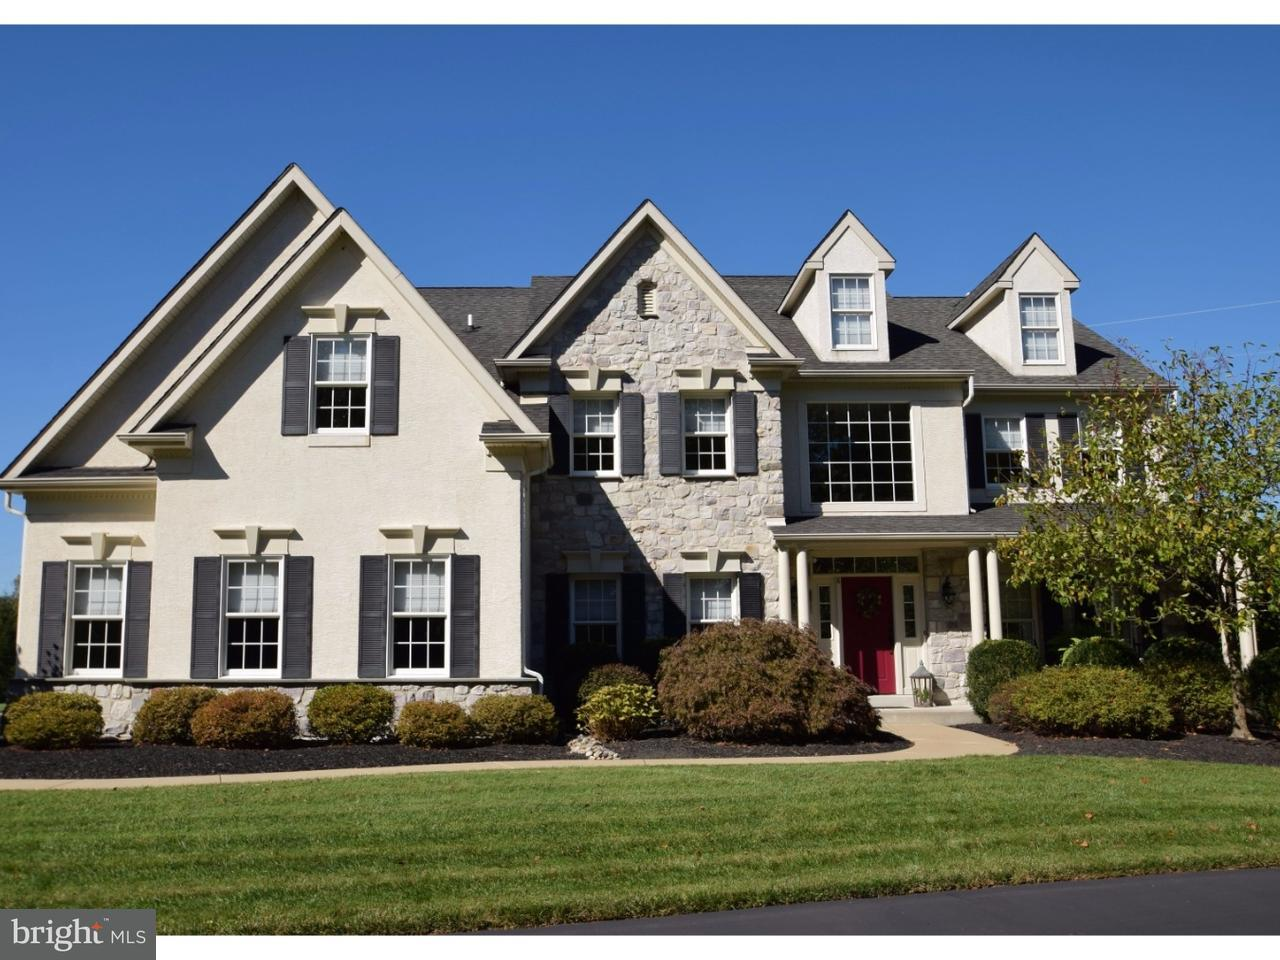 Single Family Home for Sale at 8 CHESTNUT Lane North Wales, Pennsylvania 19454 United States